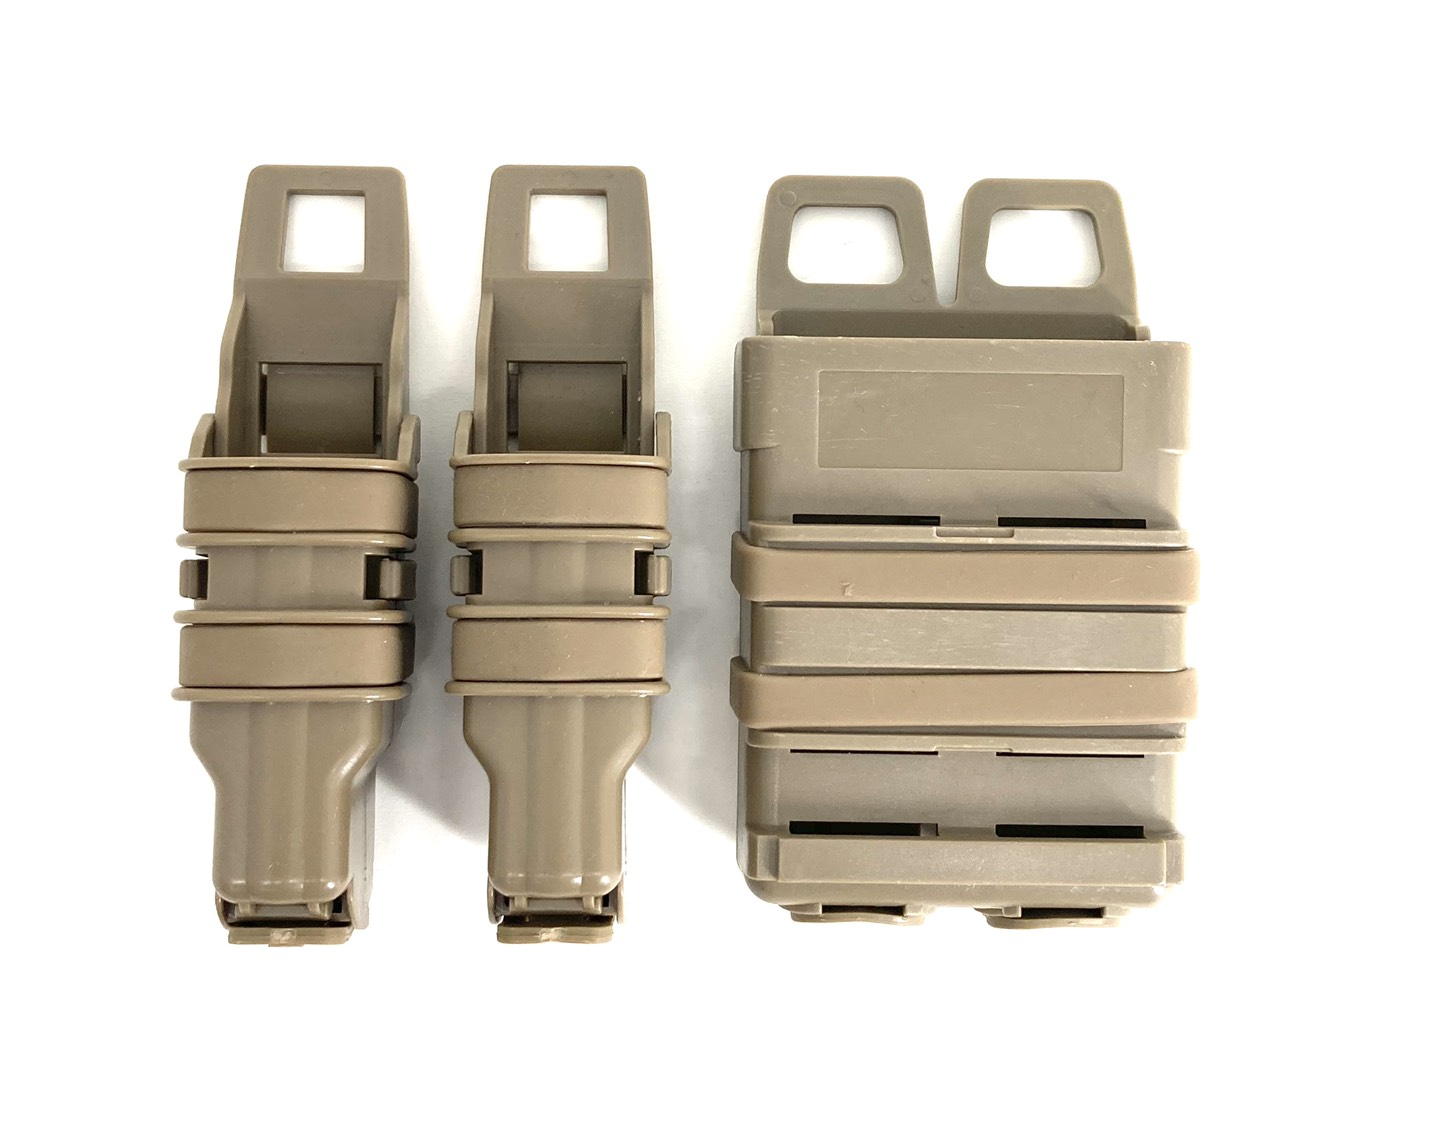 Rapidfire FastMag FOR MP5 MAG* 2PCS AND M4 MAGAZINE*1 PCS 2PCS TAN